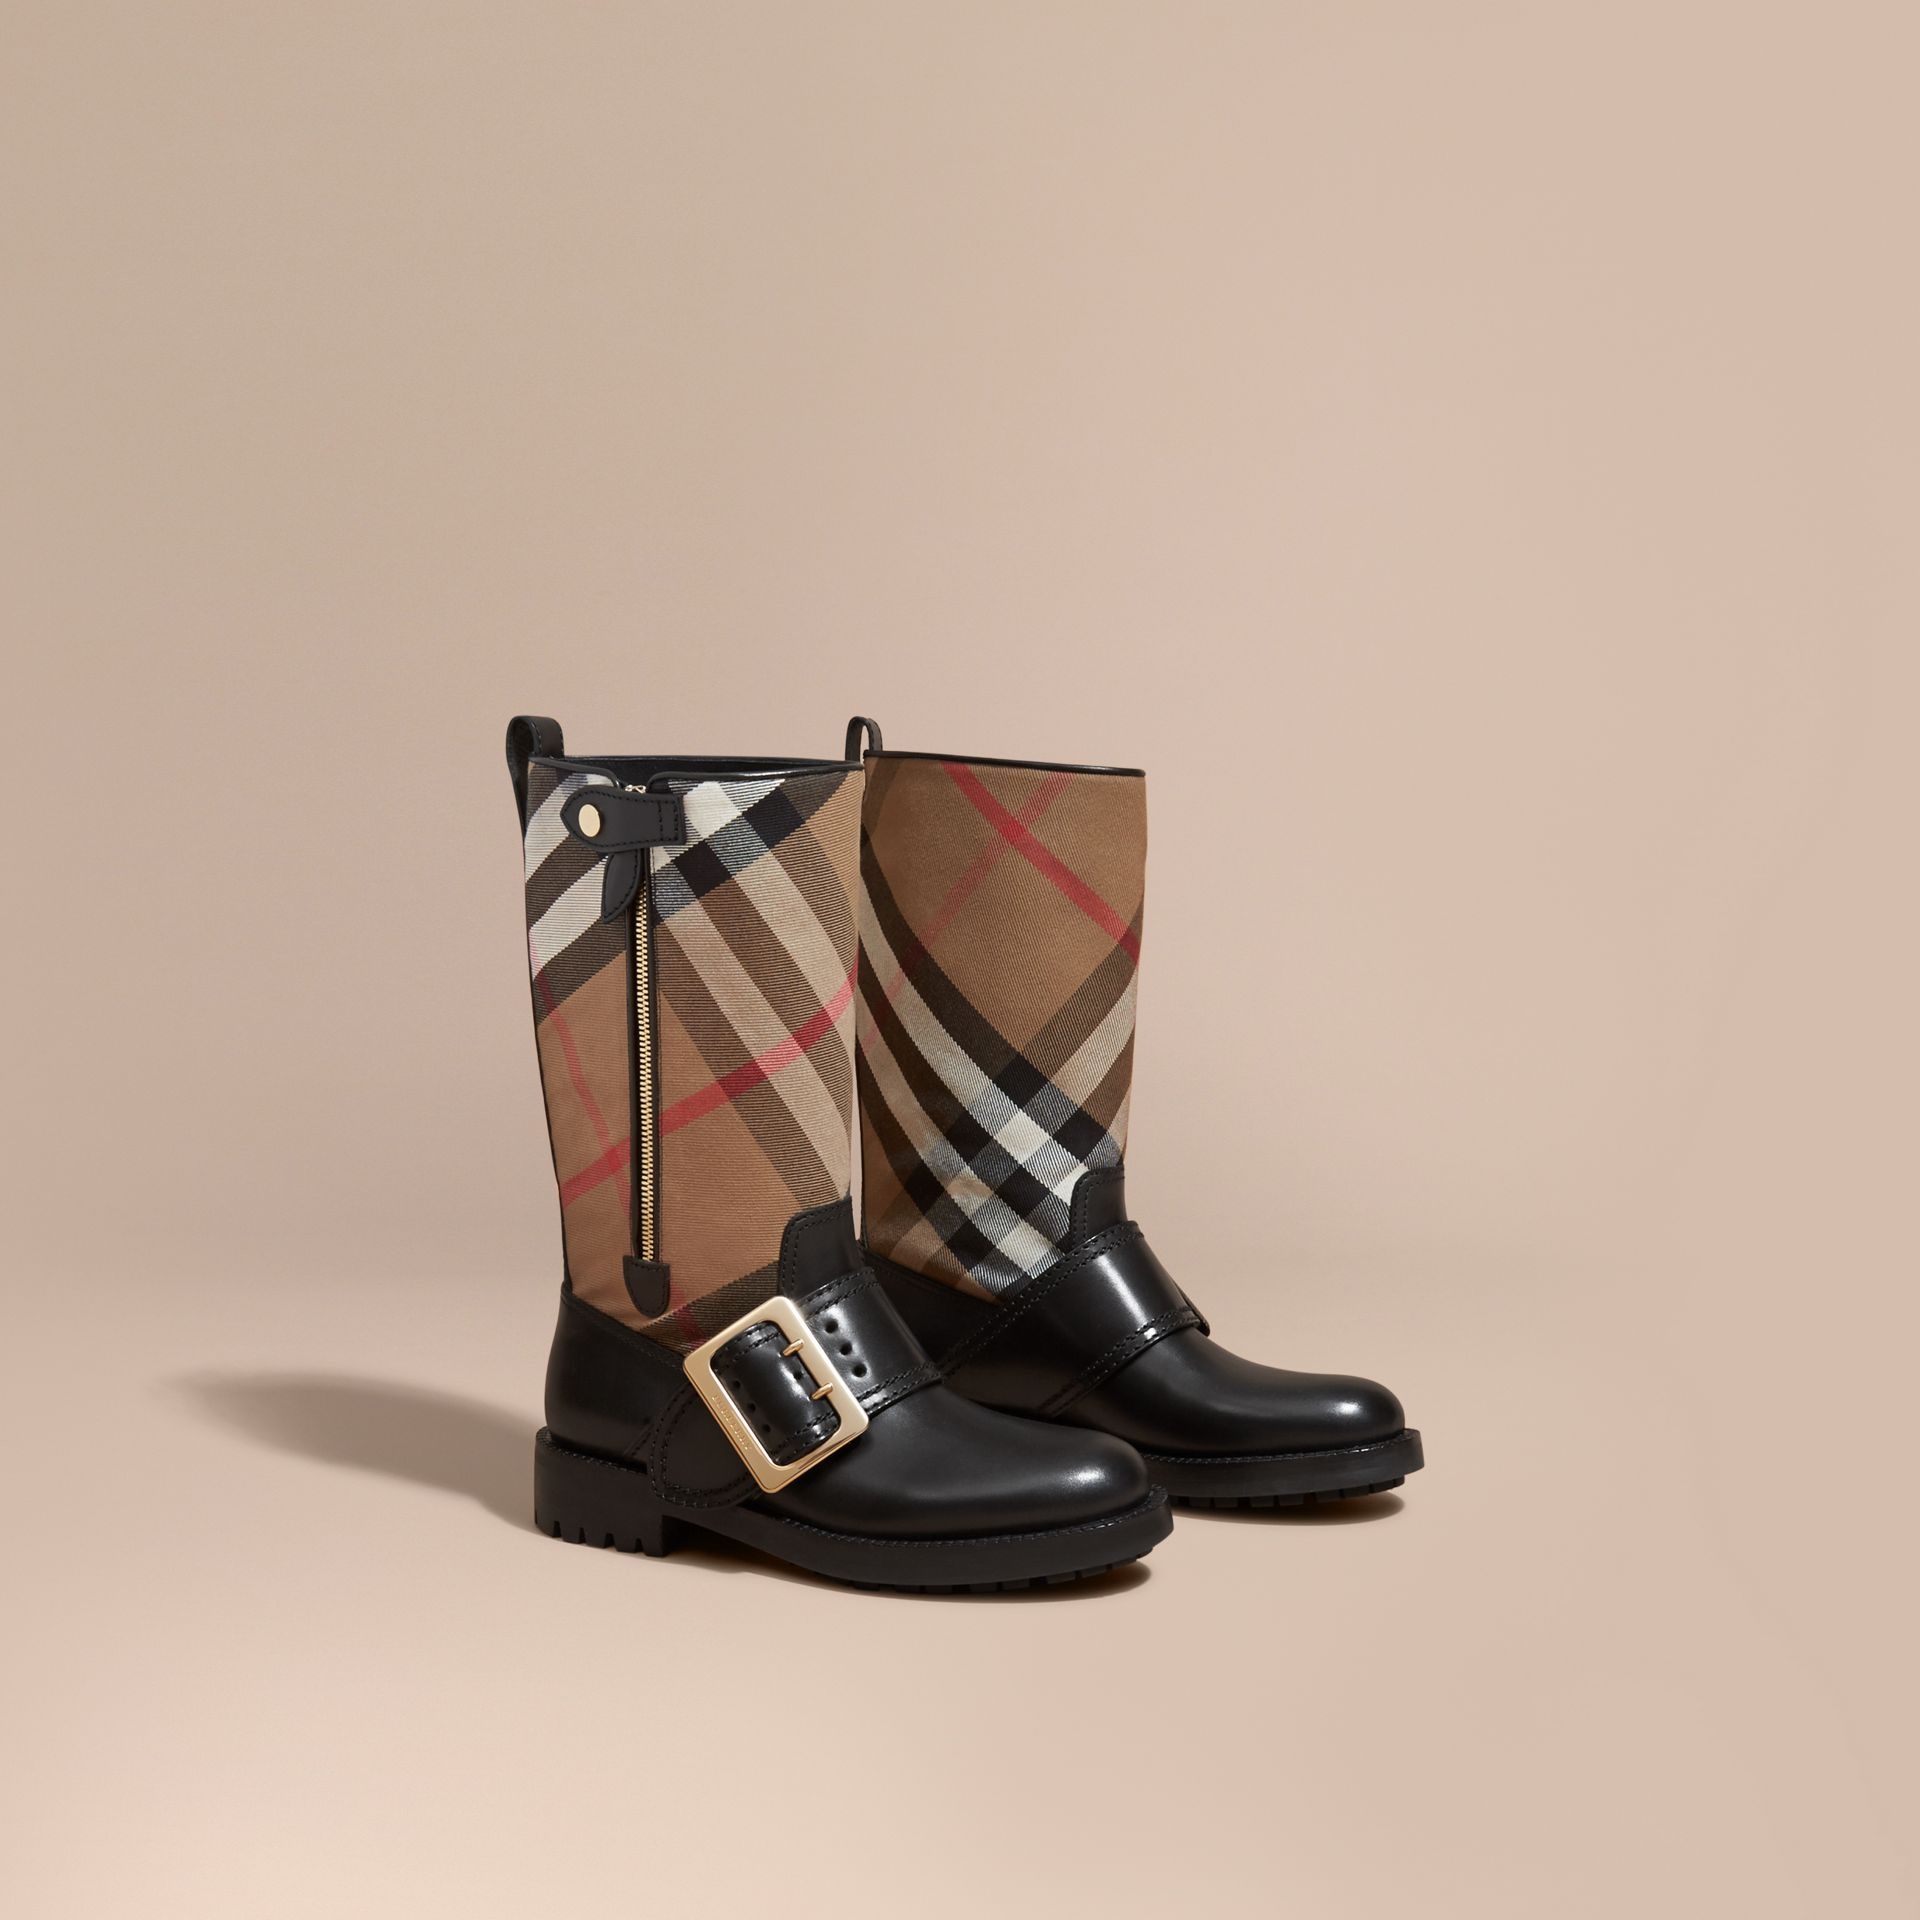 House Check Buckle Detail Leather Boots in Classic - Women | Burberry - gallery image 1